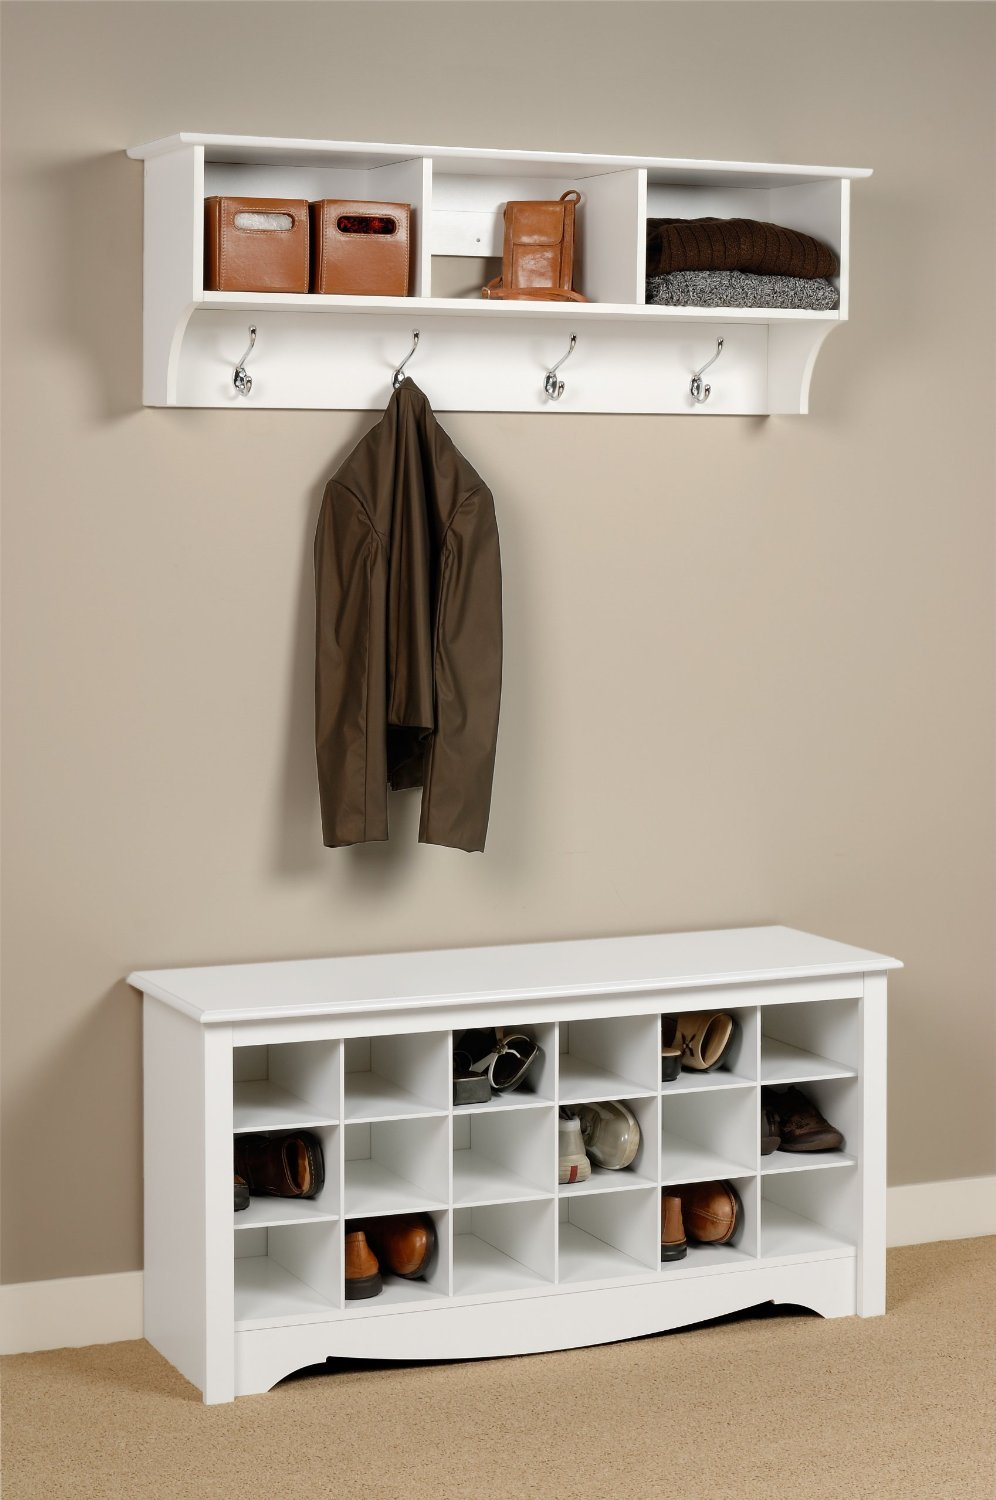 Storage For Foyer : Wood entryway shoe storage organizer bench hallway bedroom